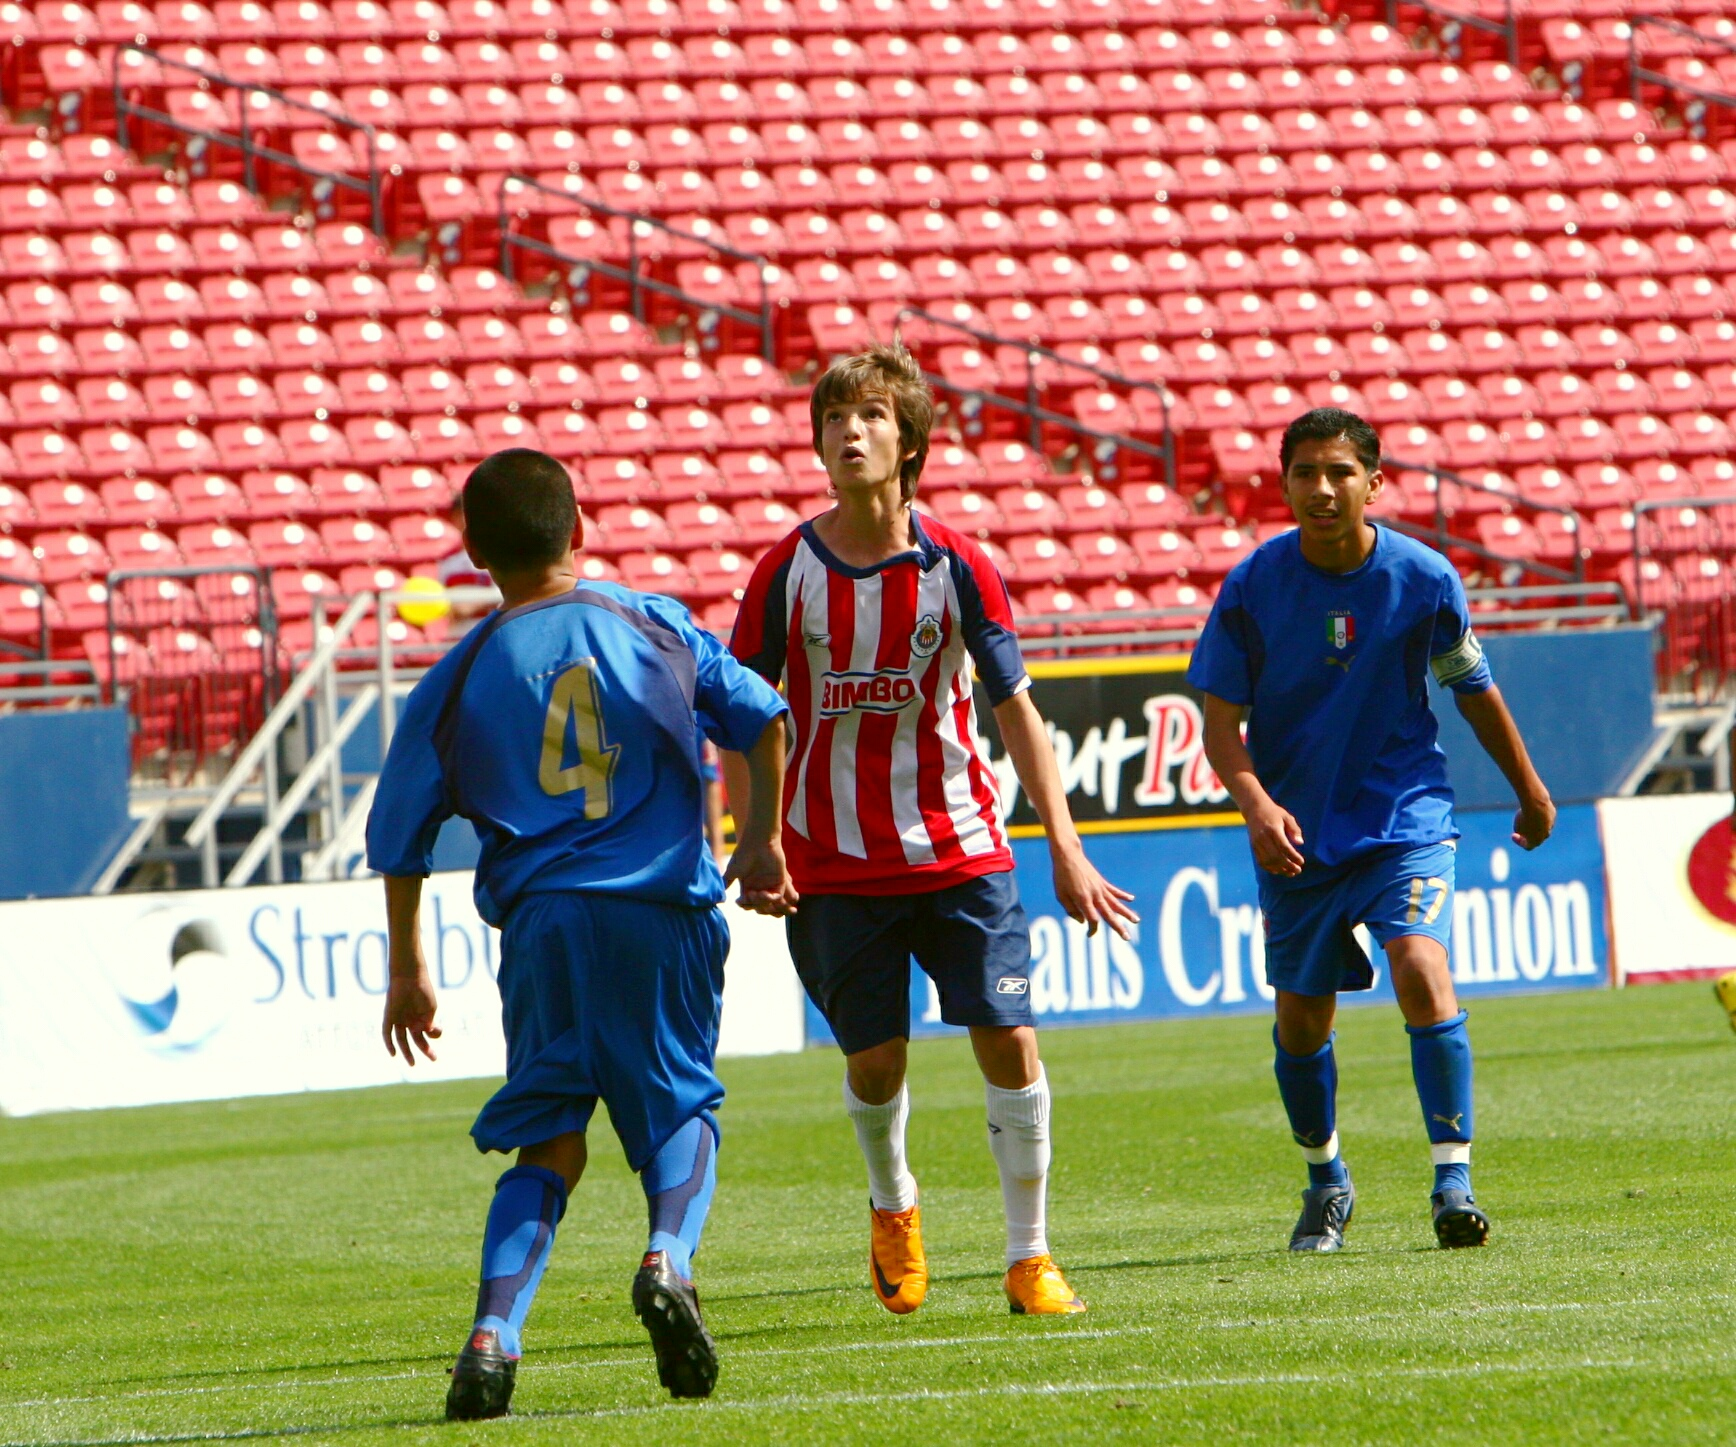 Dallas Cup 2020 Schedule 2019 2020 Dallas Cup Alumni Transfer Watch | Dallas Cup, Inc.